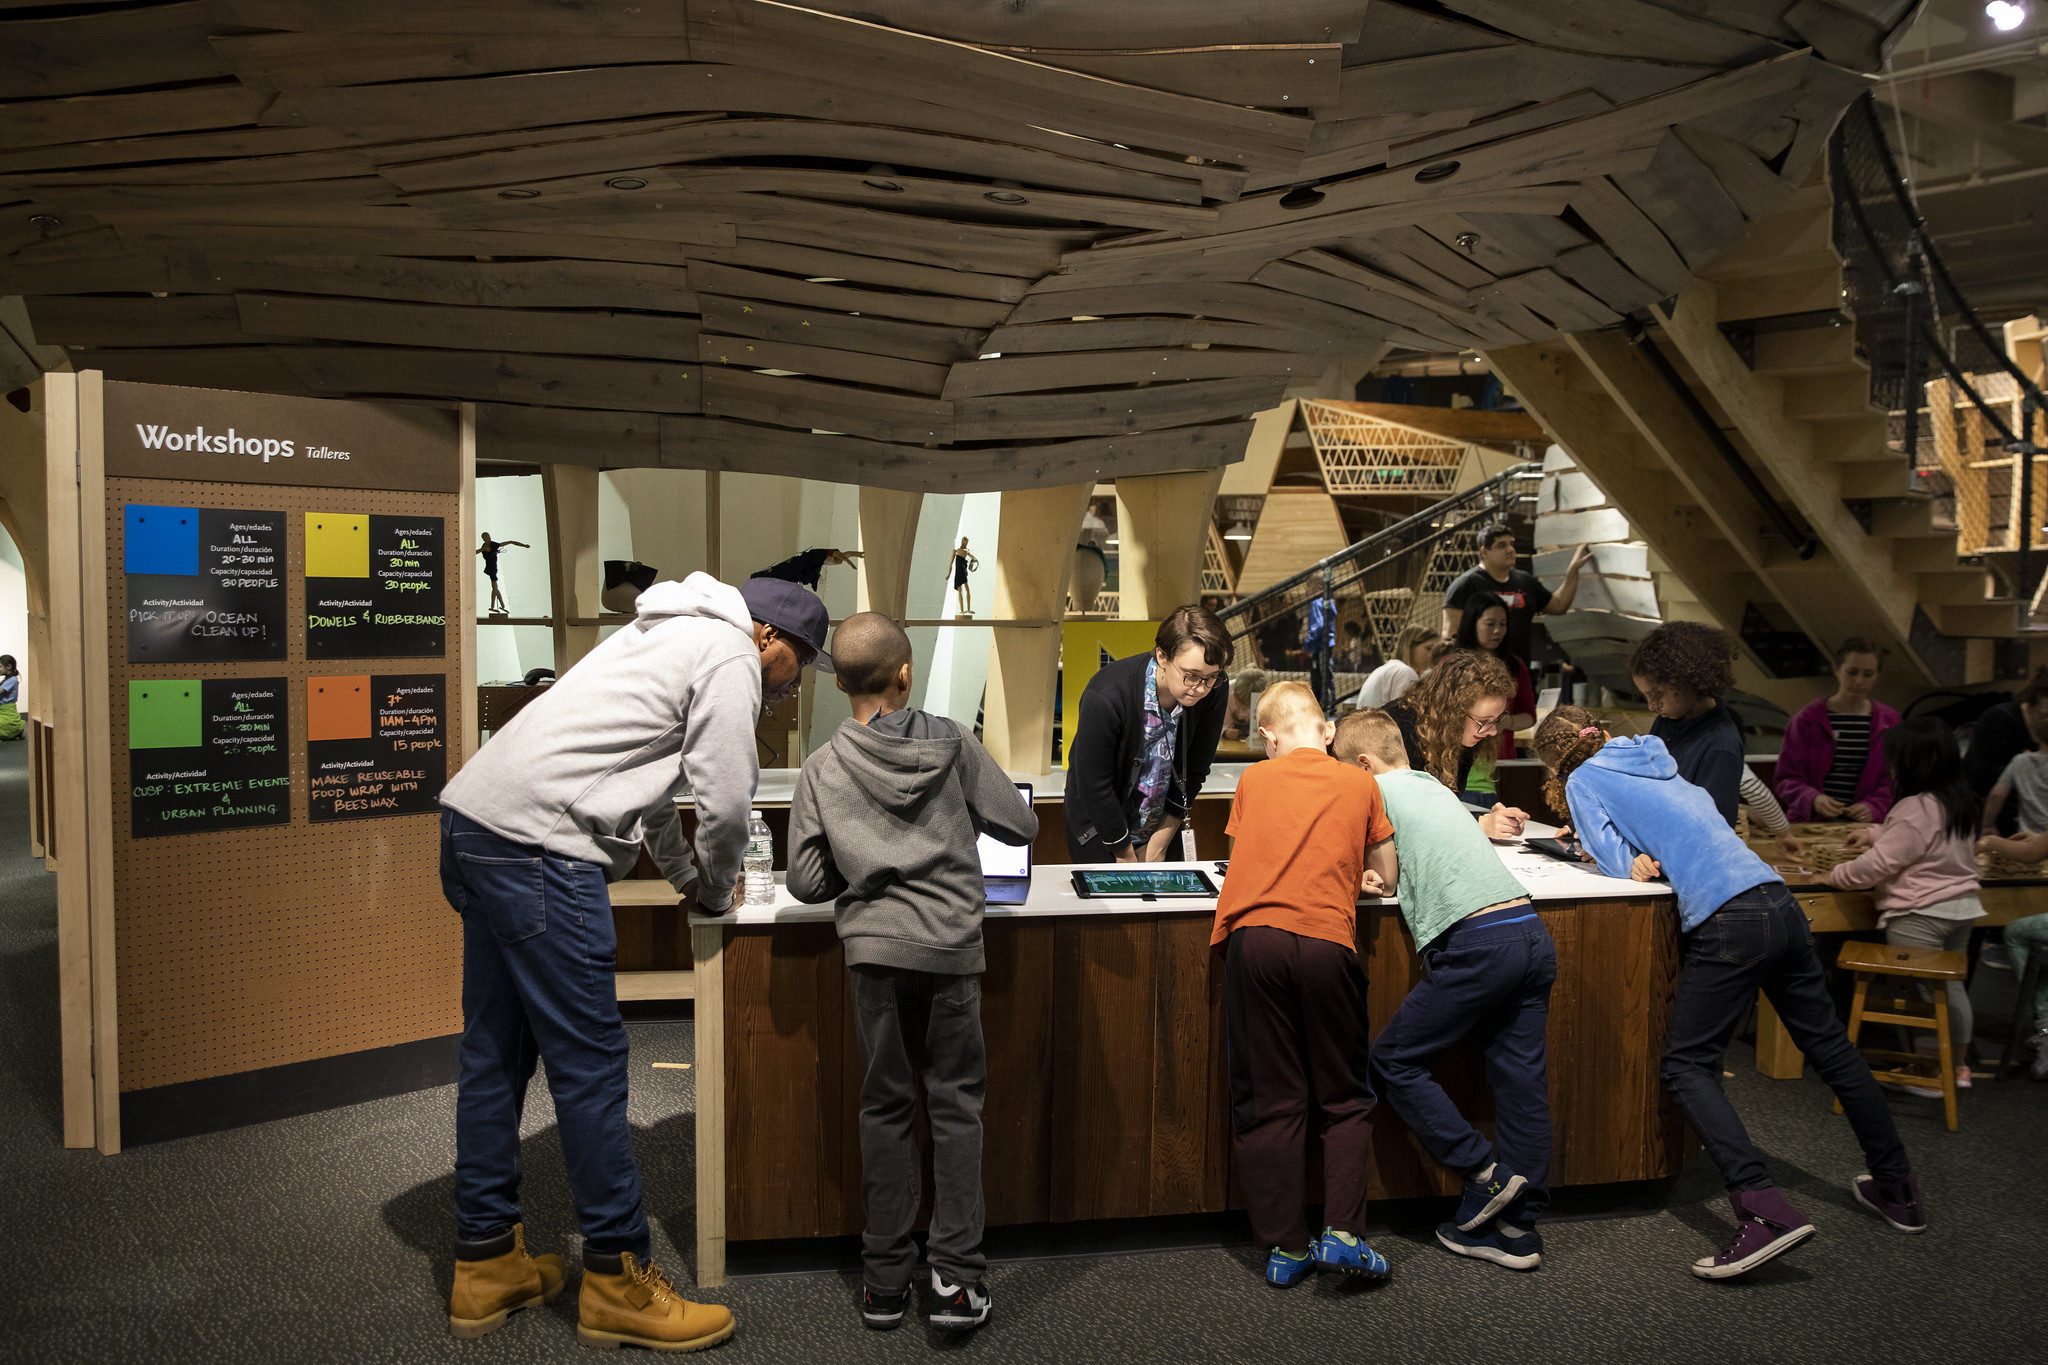 Students at a table in a museum or makerspace